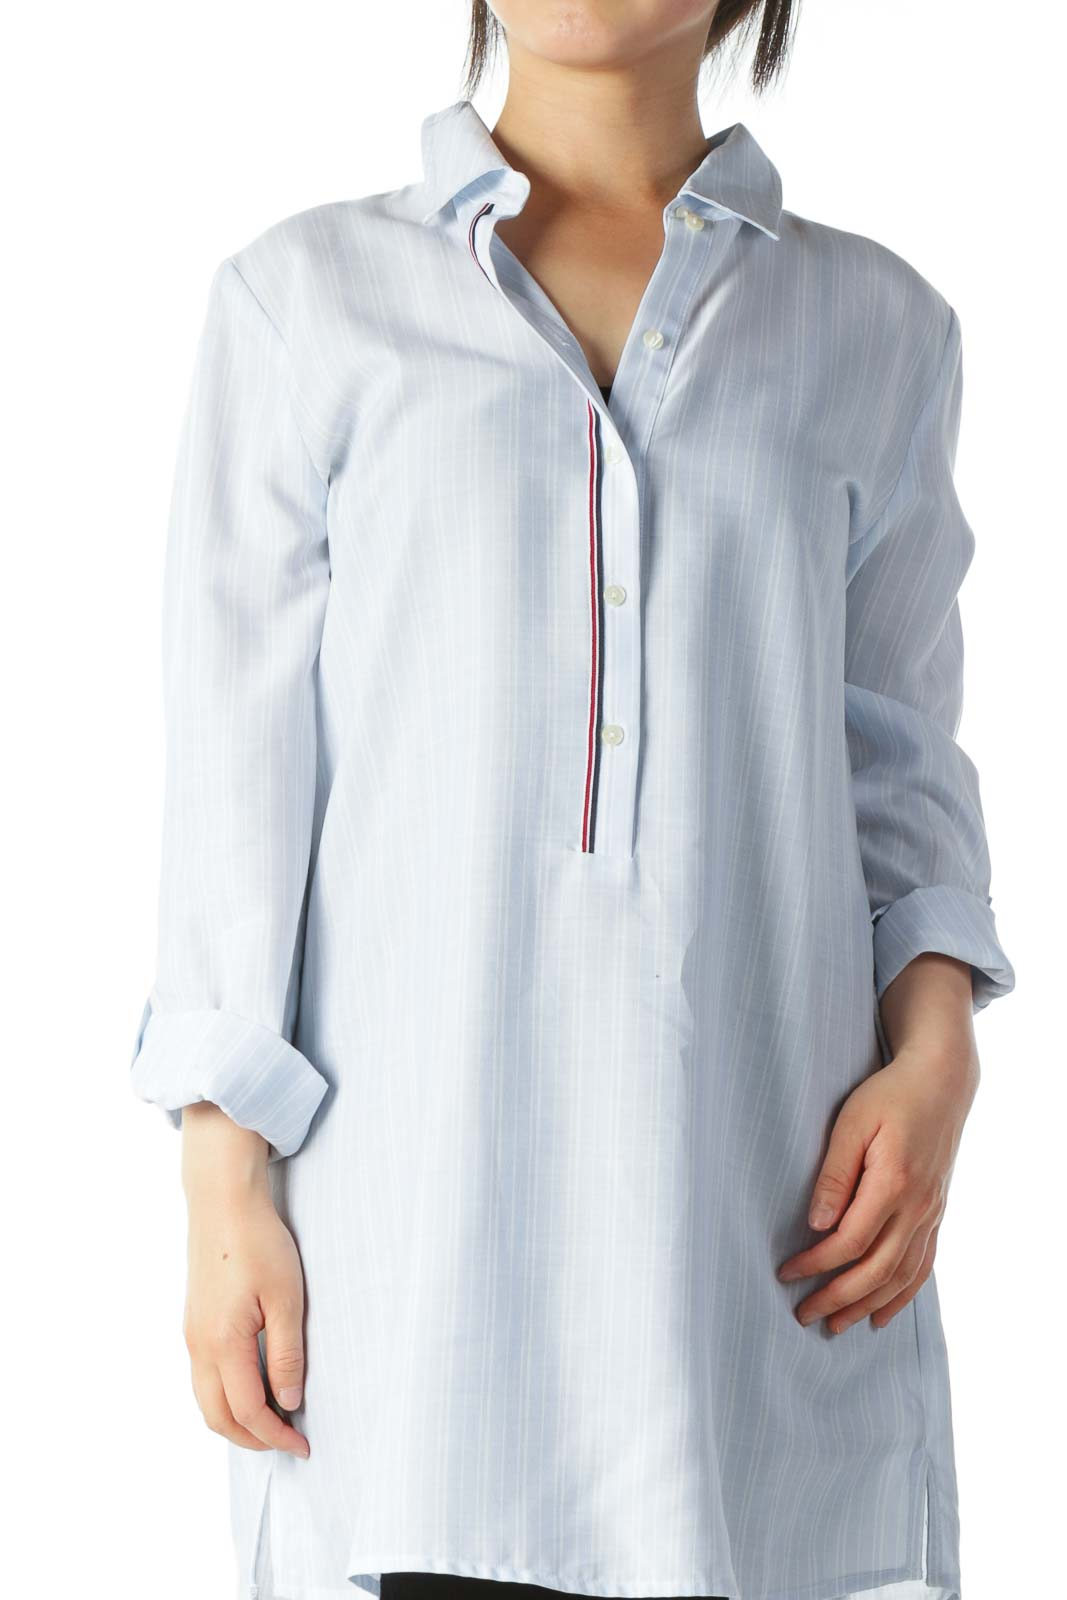 Light Blue White-Stripes Light-Weight Shirt Dress